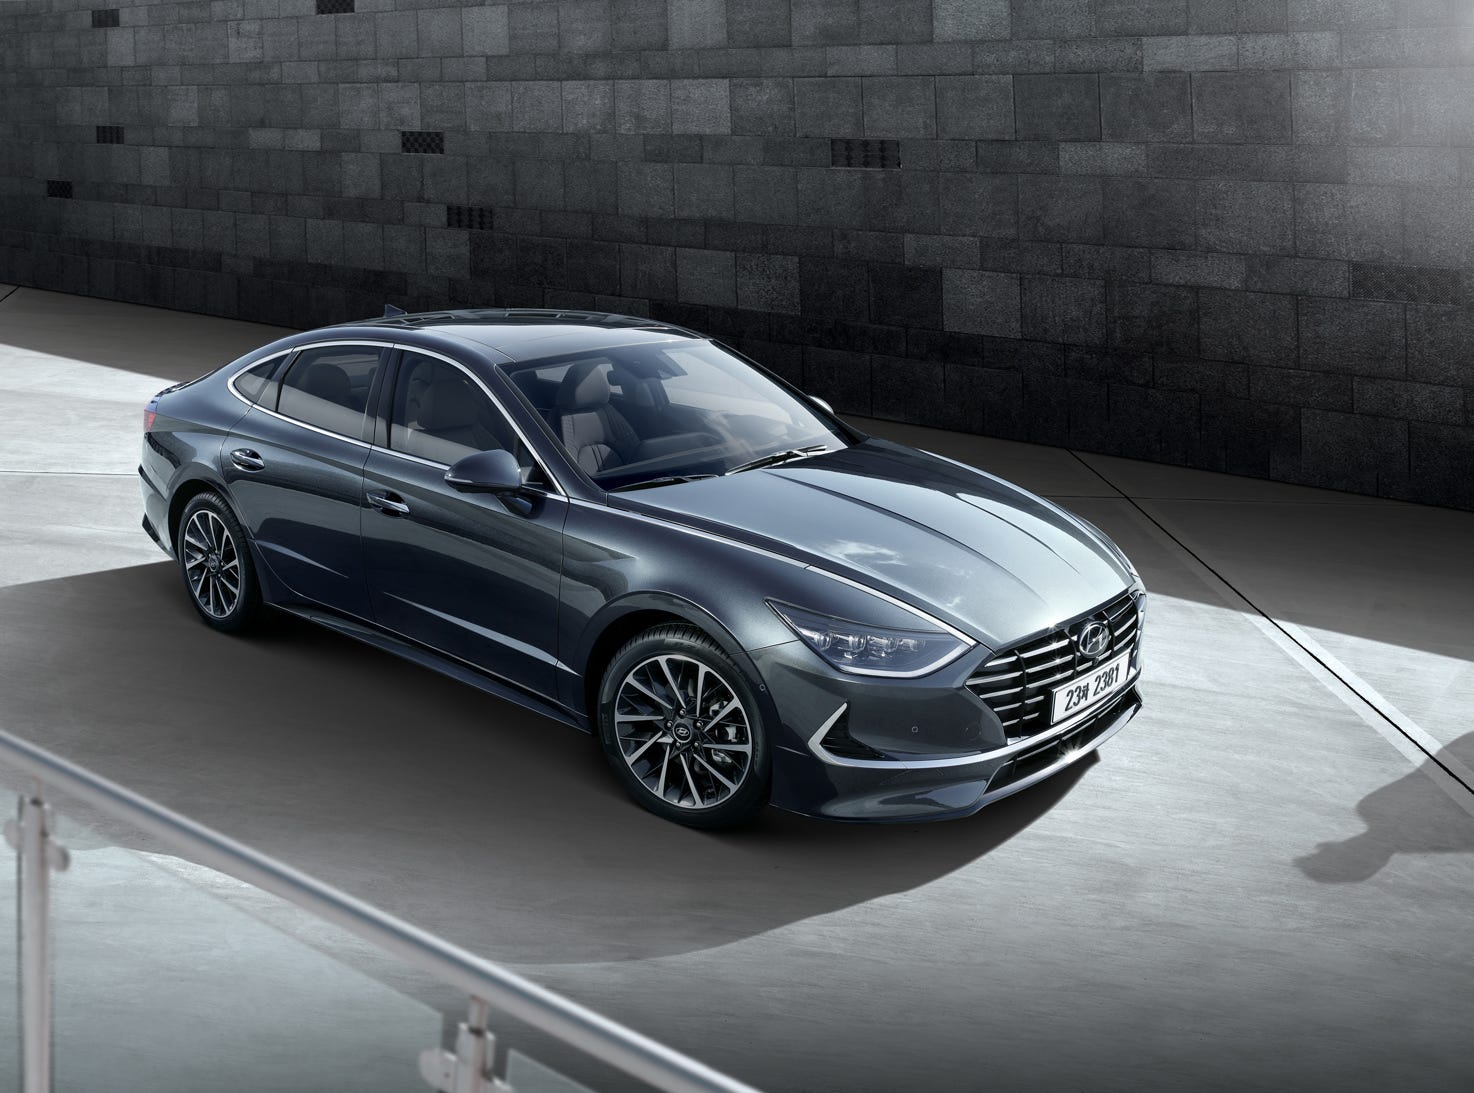 The new Sonata takes its inspiration from the Le Fil Rouge concept, which debuted at the 2018 Geneva International Motor Show. The new Sonata is lower, wider and longer than its predecessor.